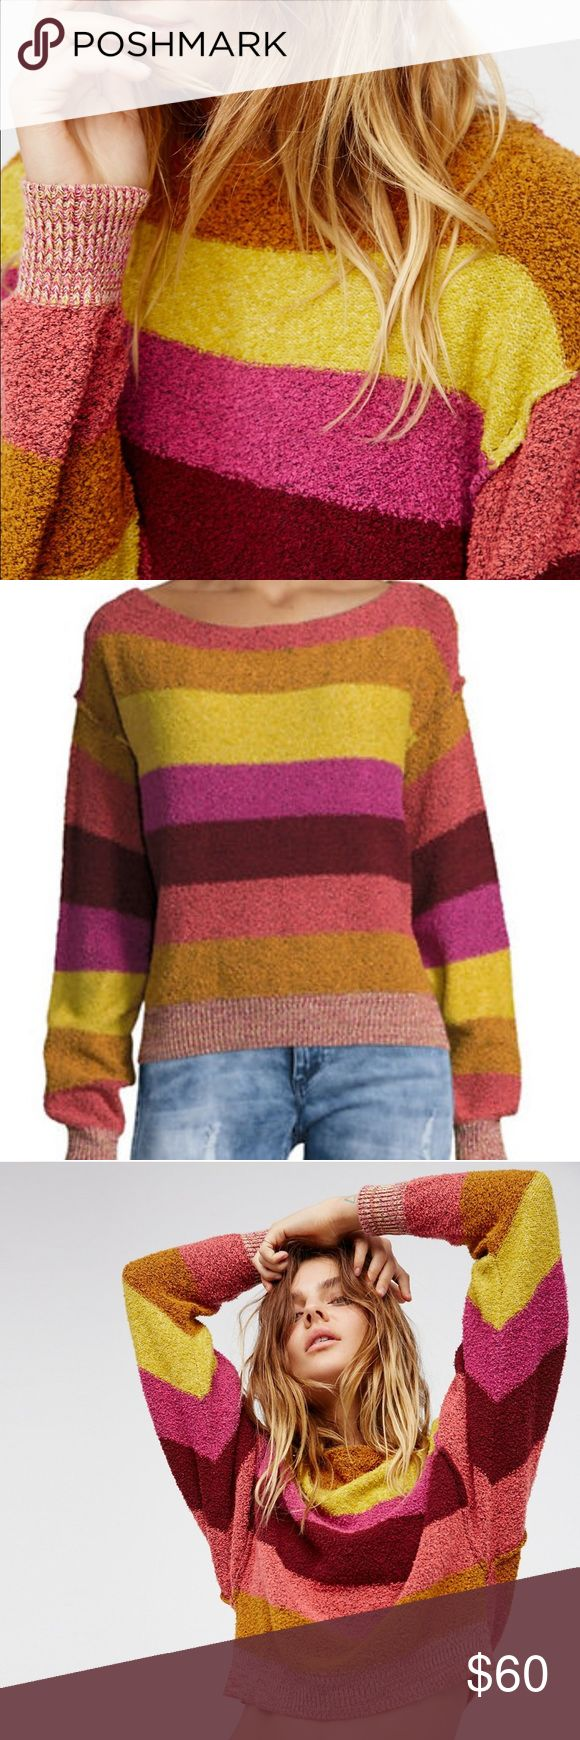 Free People Candyland Pullover Only worn once! Excellent condition. Size Small. Soft and fuzzy pullover featuring a slightly cropped for and bold striped print. Ribbed band and sleeve cuffs. Subtle side vents. Perfect for spring and summer! Cotton/Acrylic blend. Currently $98 online at FP. Free People Sweaters